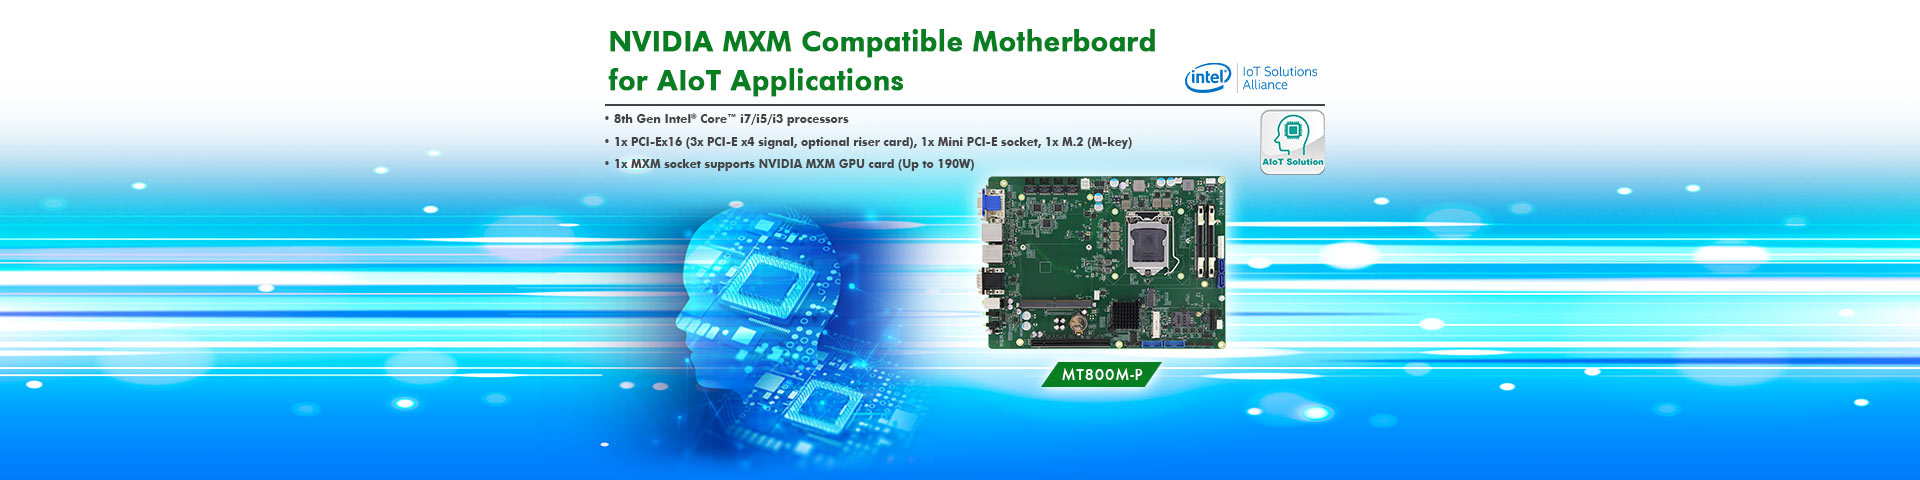 NVIDIA MXM Compatible Motherboard for AIoT Applications